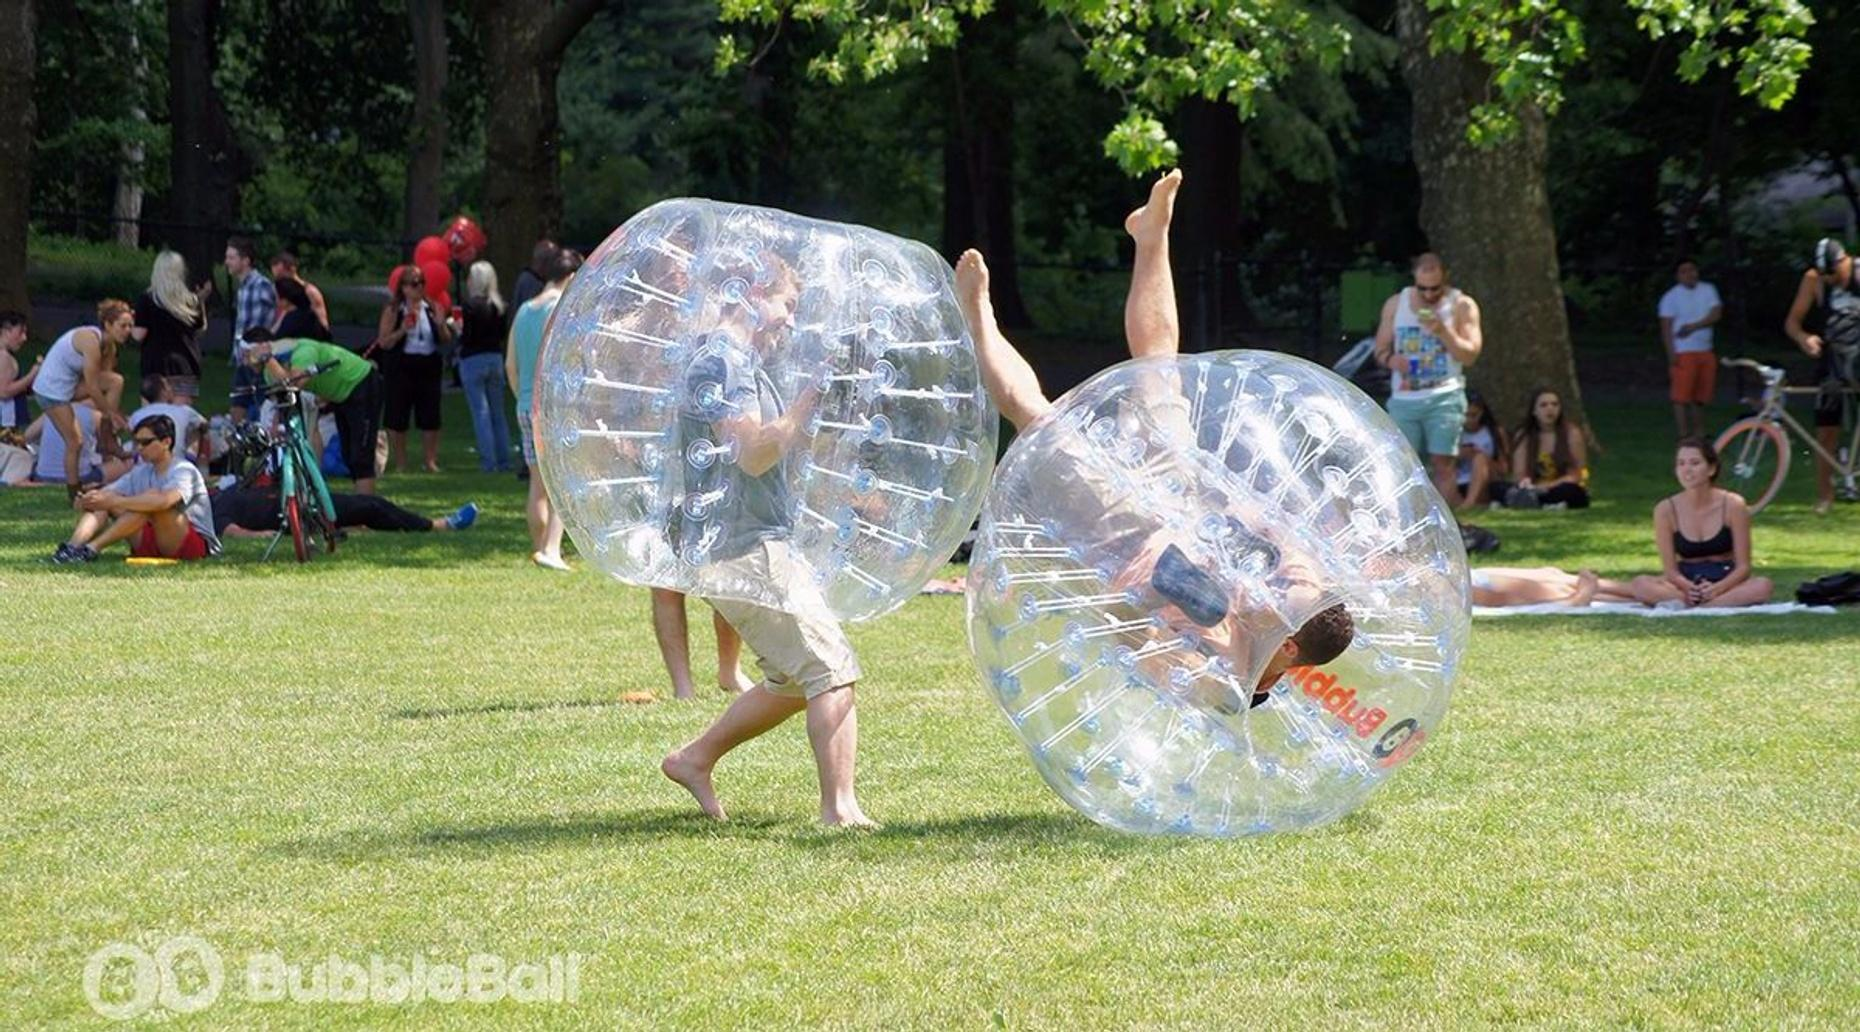 1-Hour BubbleBall Rental in Pasadena